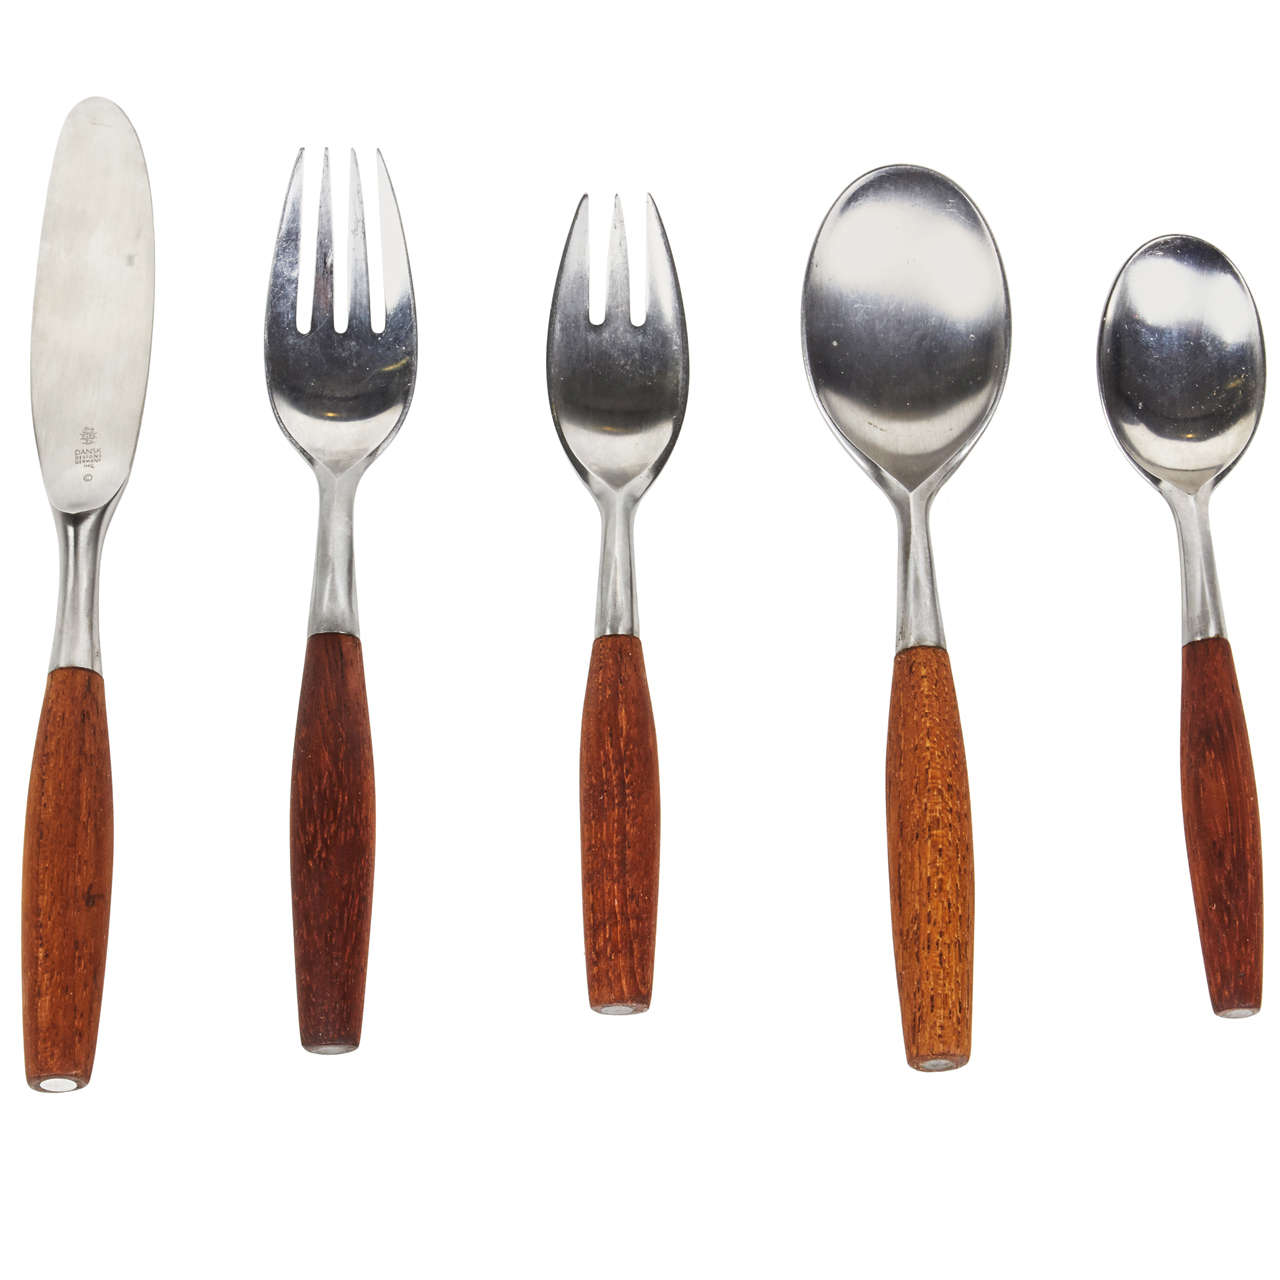 Fjord Five Piece Flatware Set by Jens Quistgaard